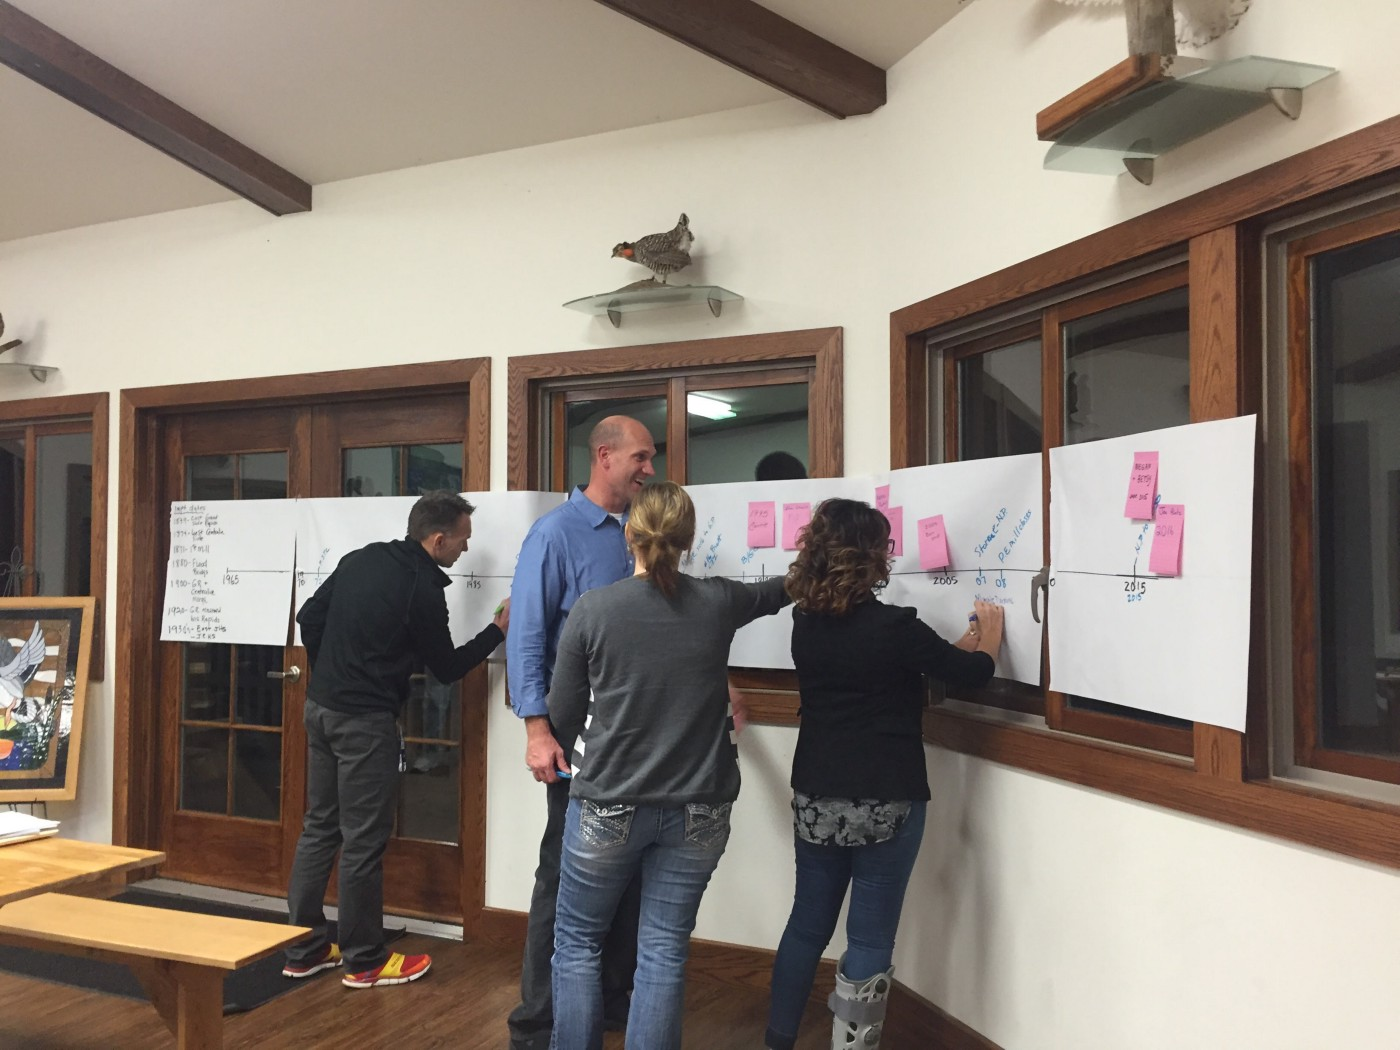 Four people standing next to a long, horizontal piece of butcher paper with a timeline drawn on it. They are pointing and writing new dates on to it.